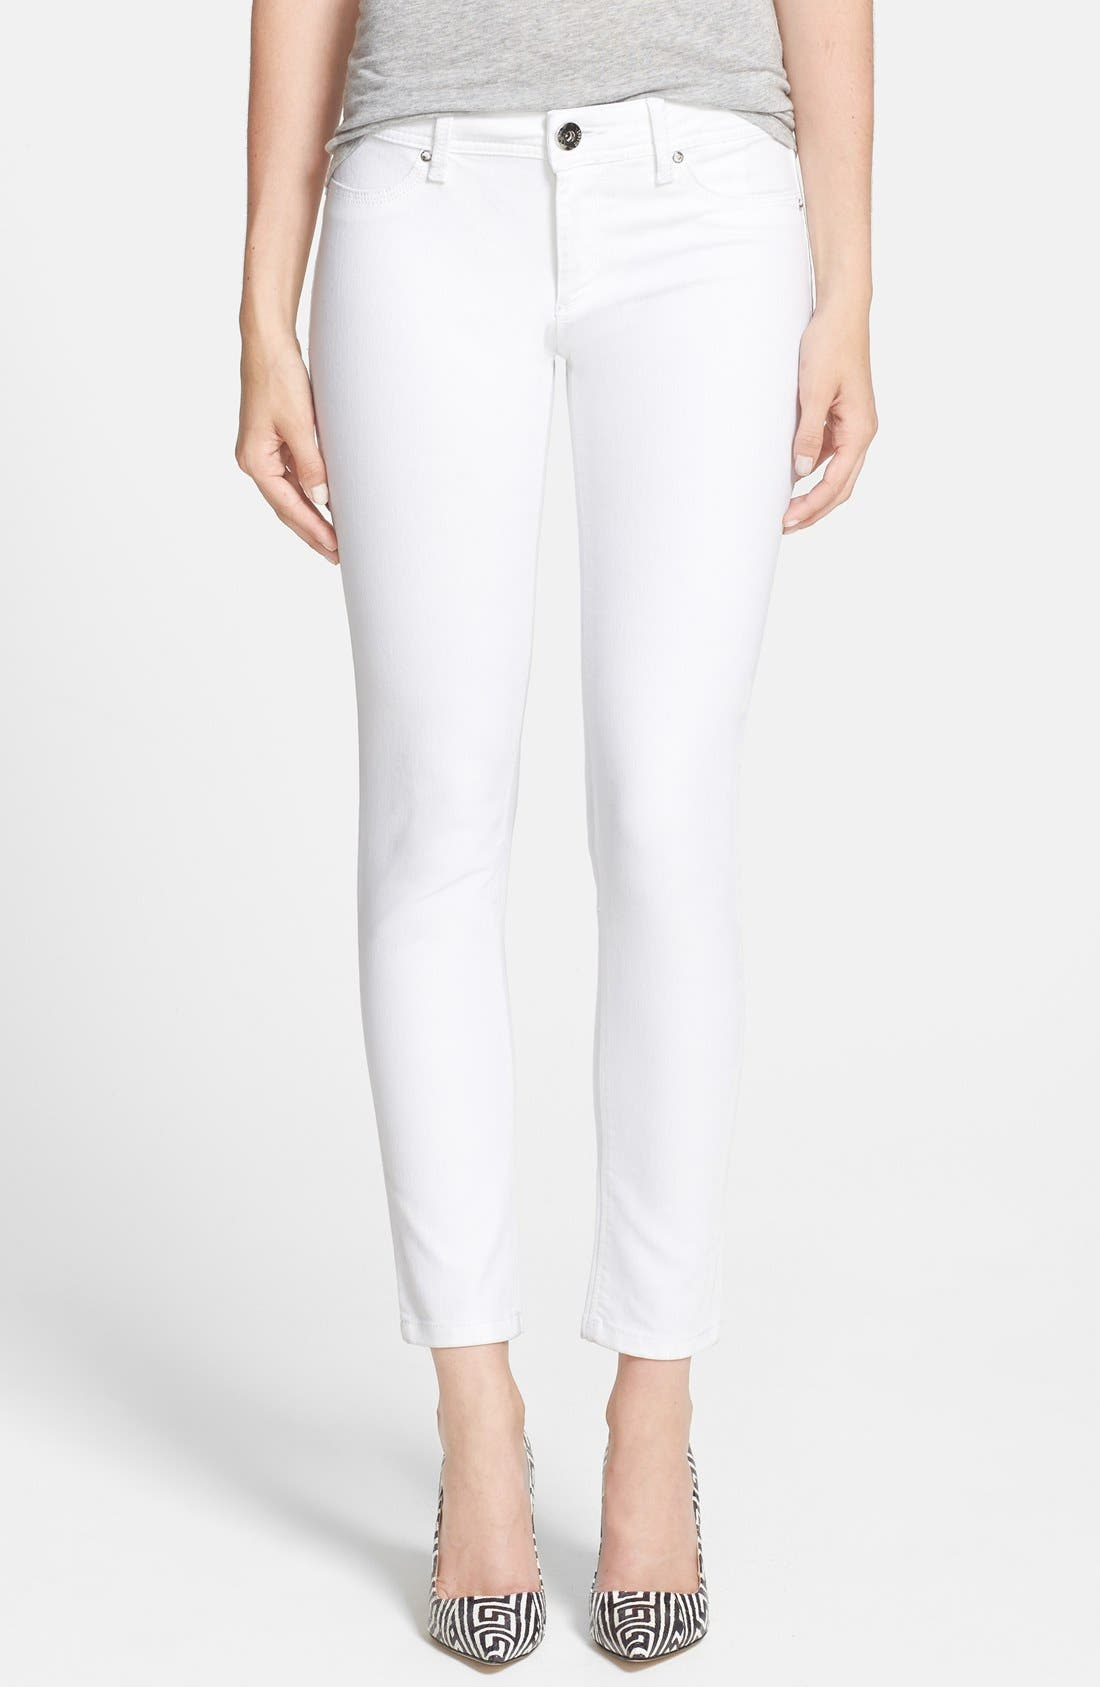 Main Image - DL1961 'Emma' Power Legging Jeans (Milk)